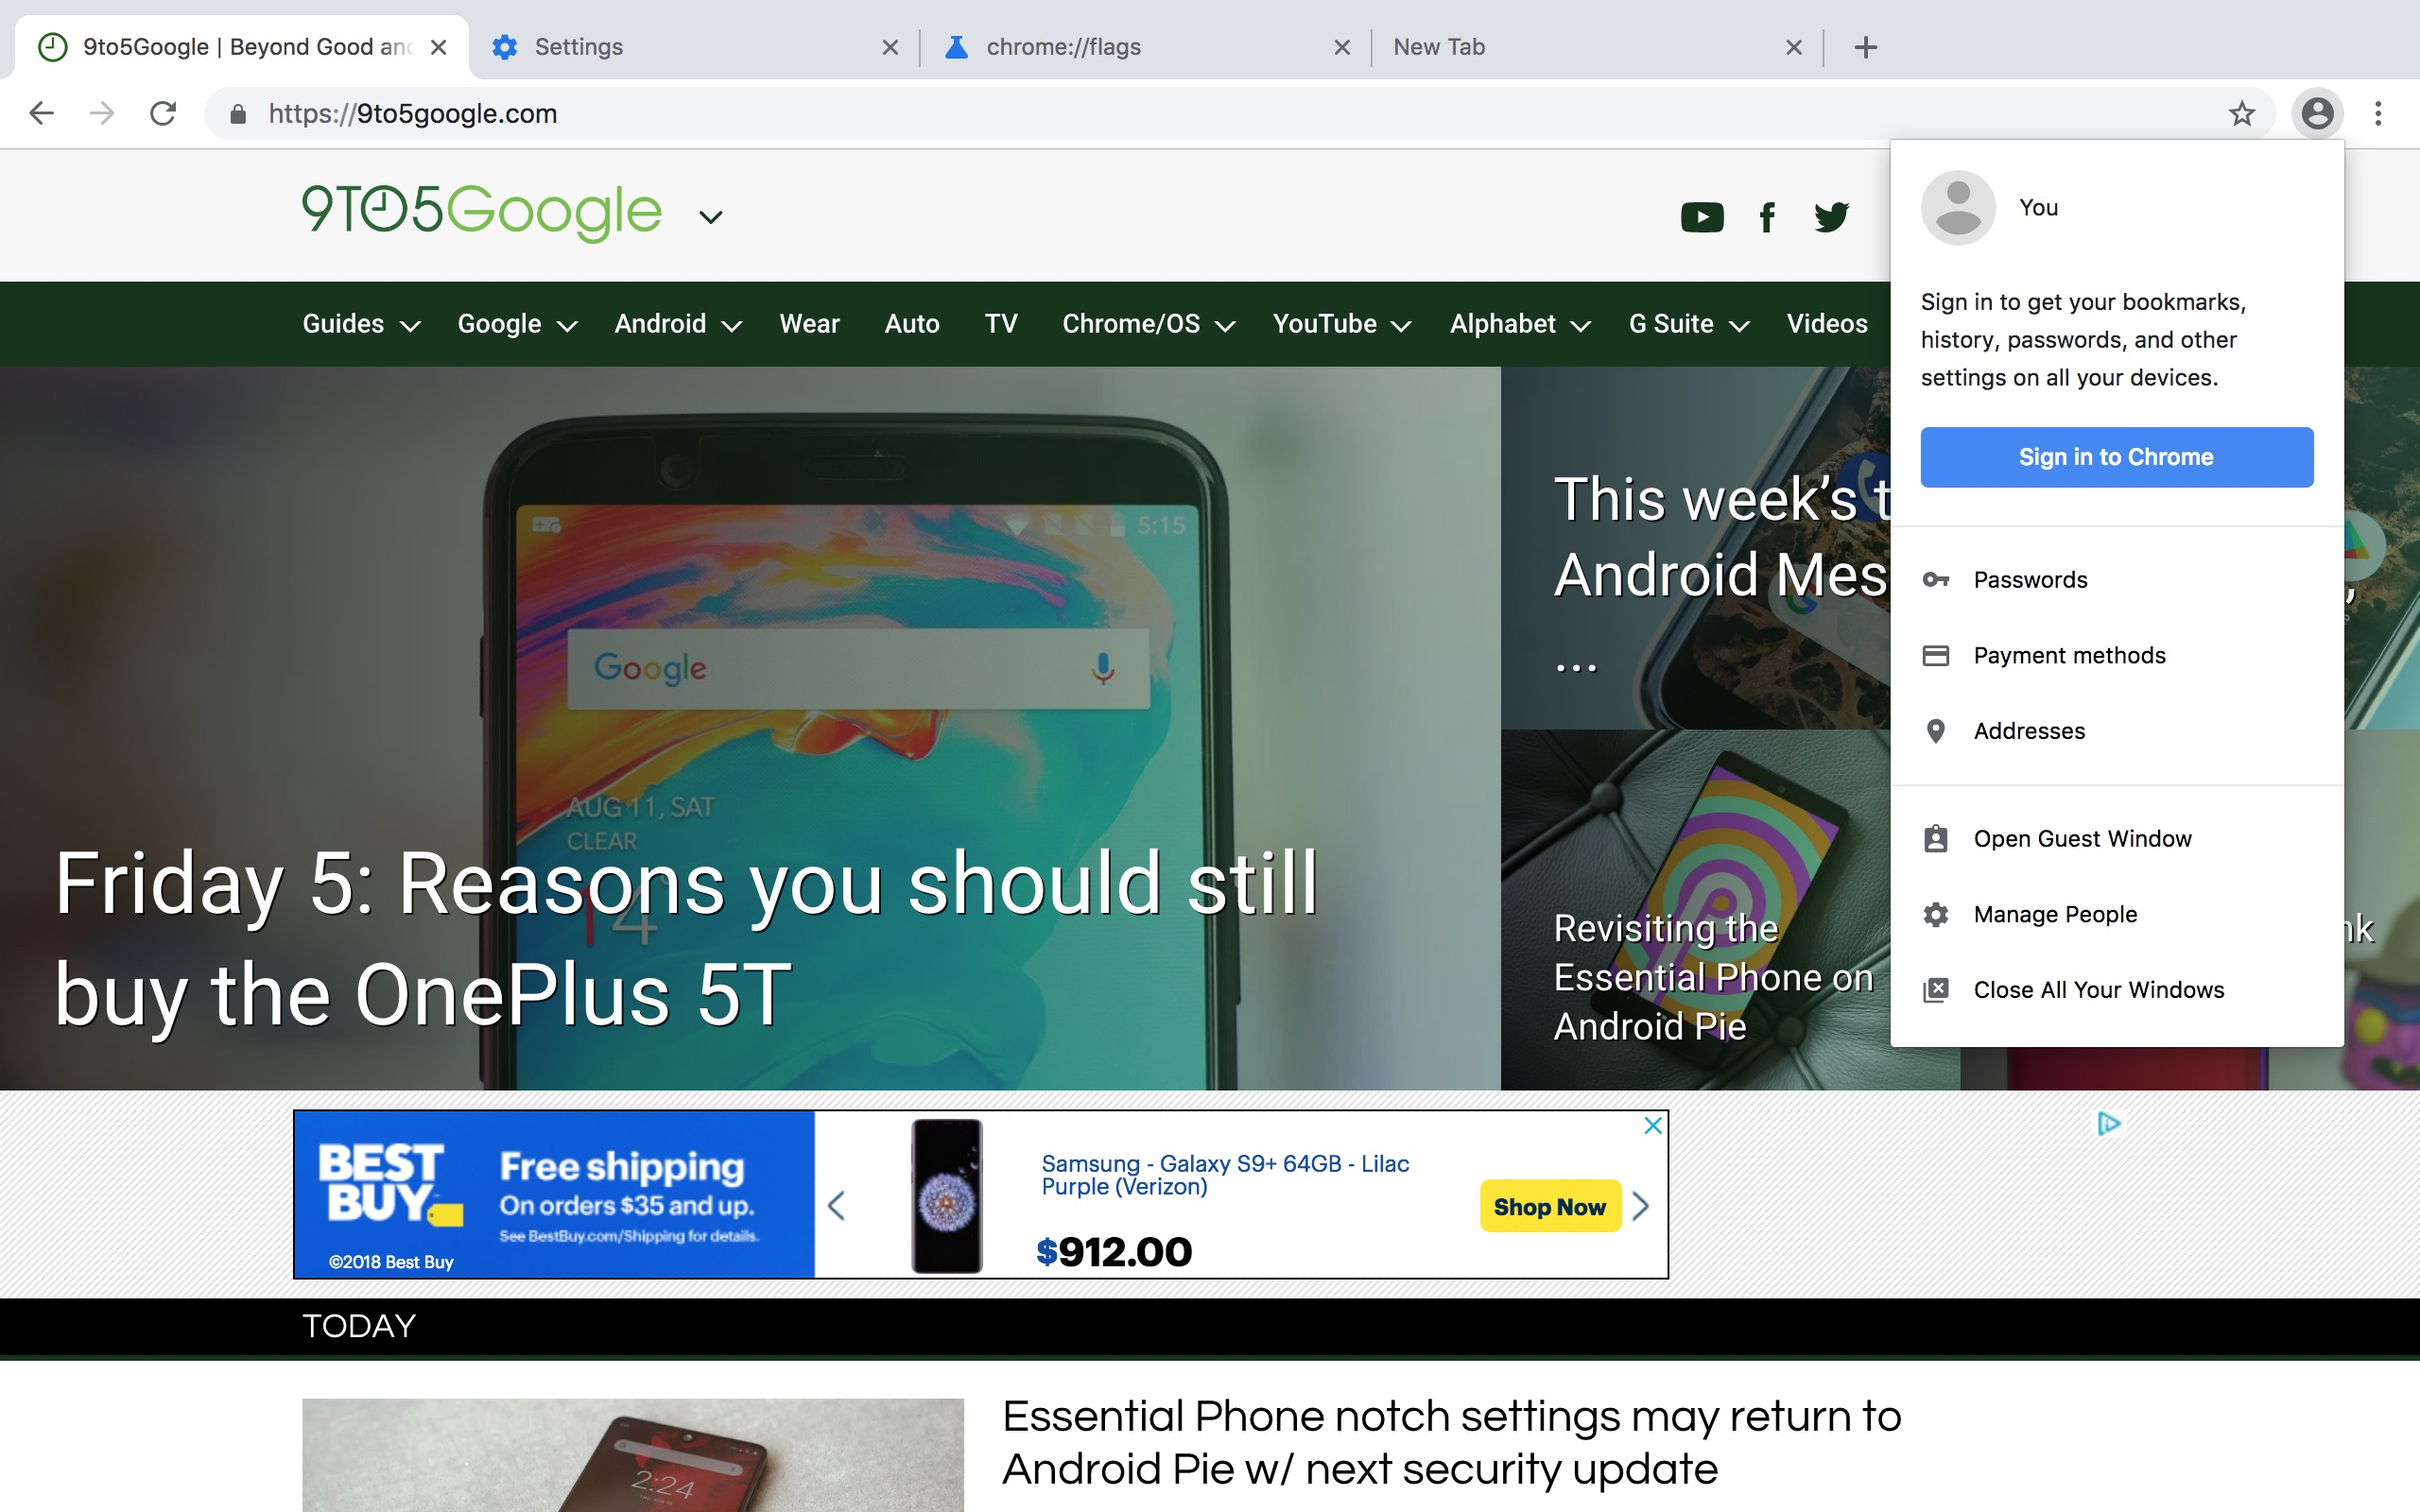 Chrome 69 rolling out 'Material Design refresh' next month 'across